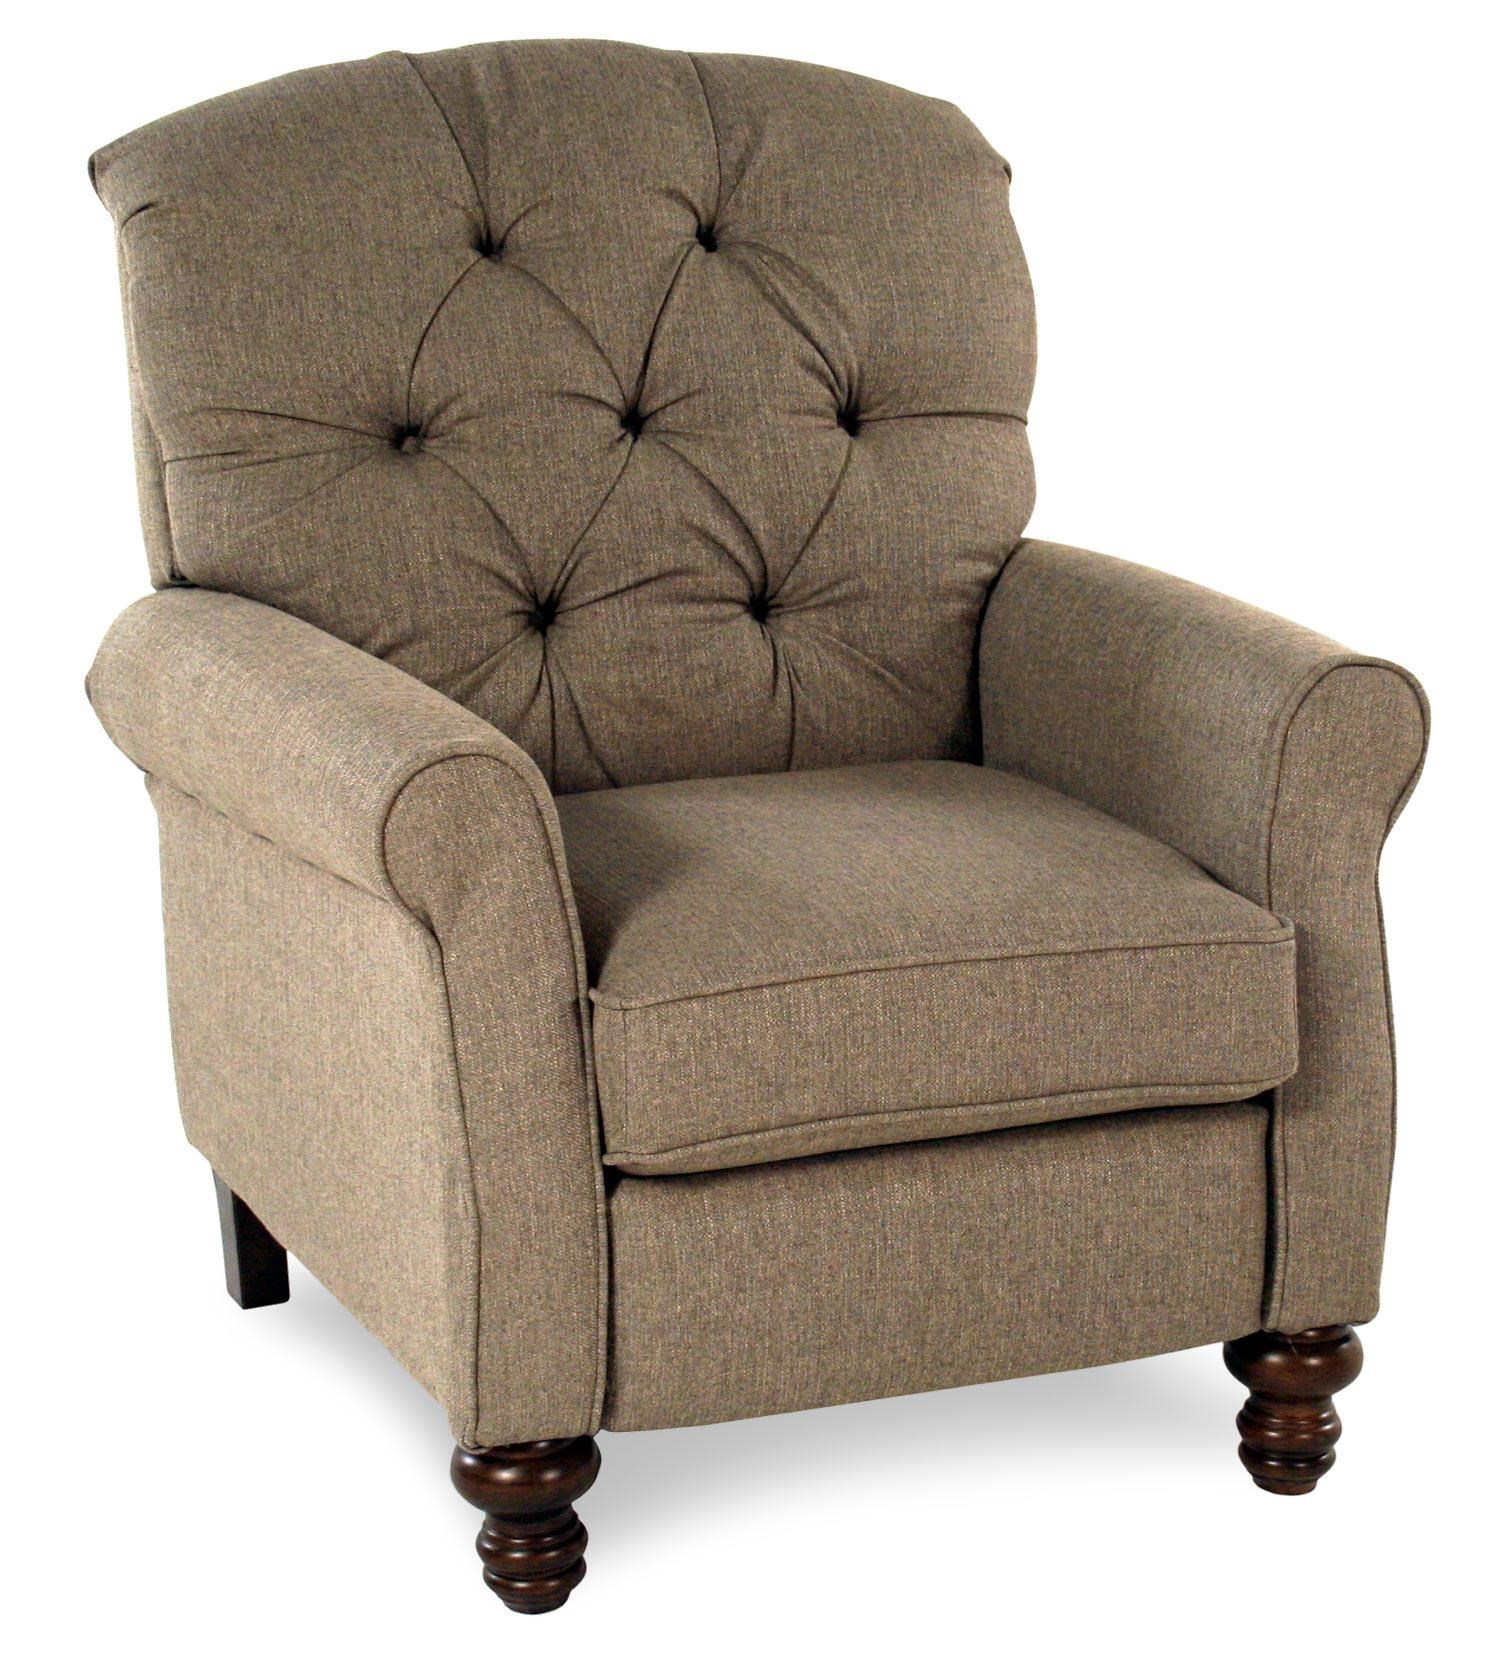 Sealy Leather Sofa: Serta Upholstery Pemberly Traditional High Leg Recliner